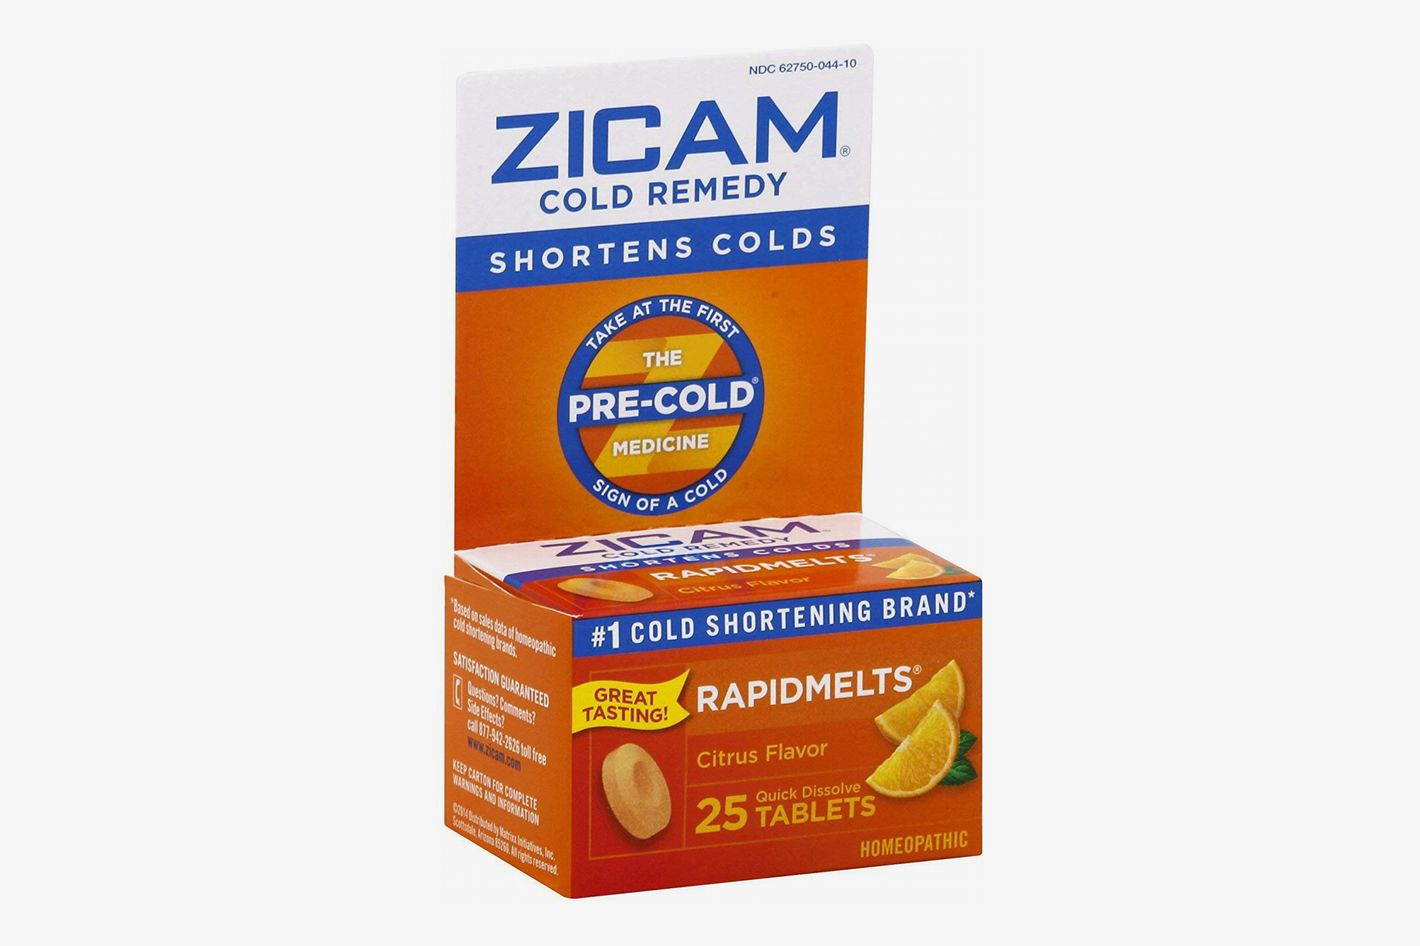 Zicam Cold Remedy Citrus RapidMelts, 25 Quick Dissolve Tablets